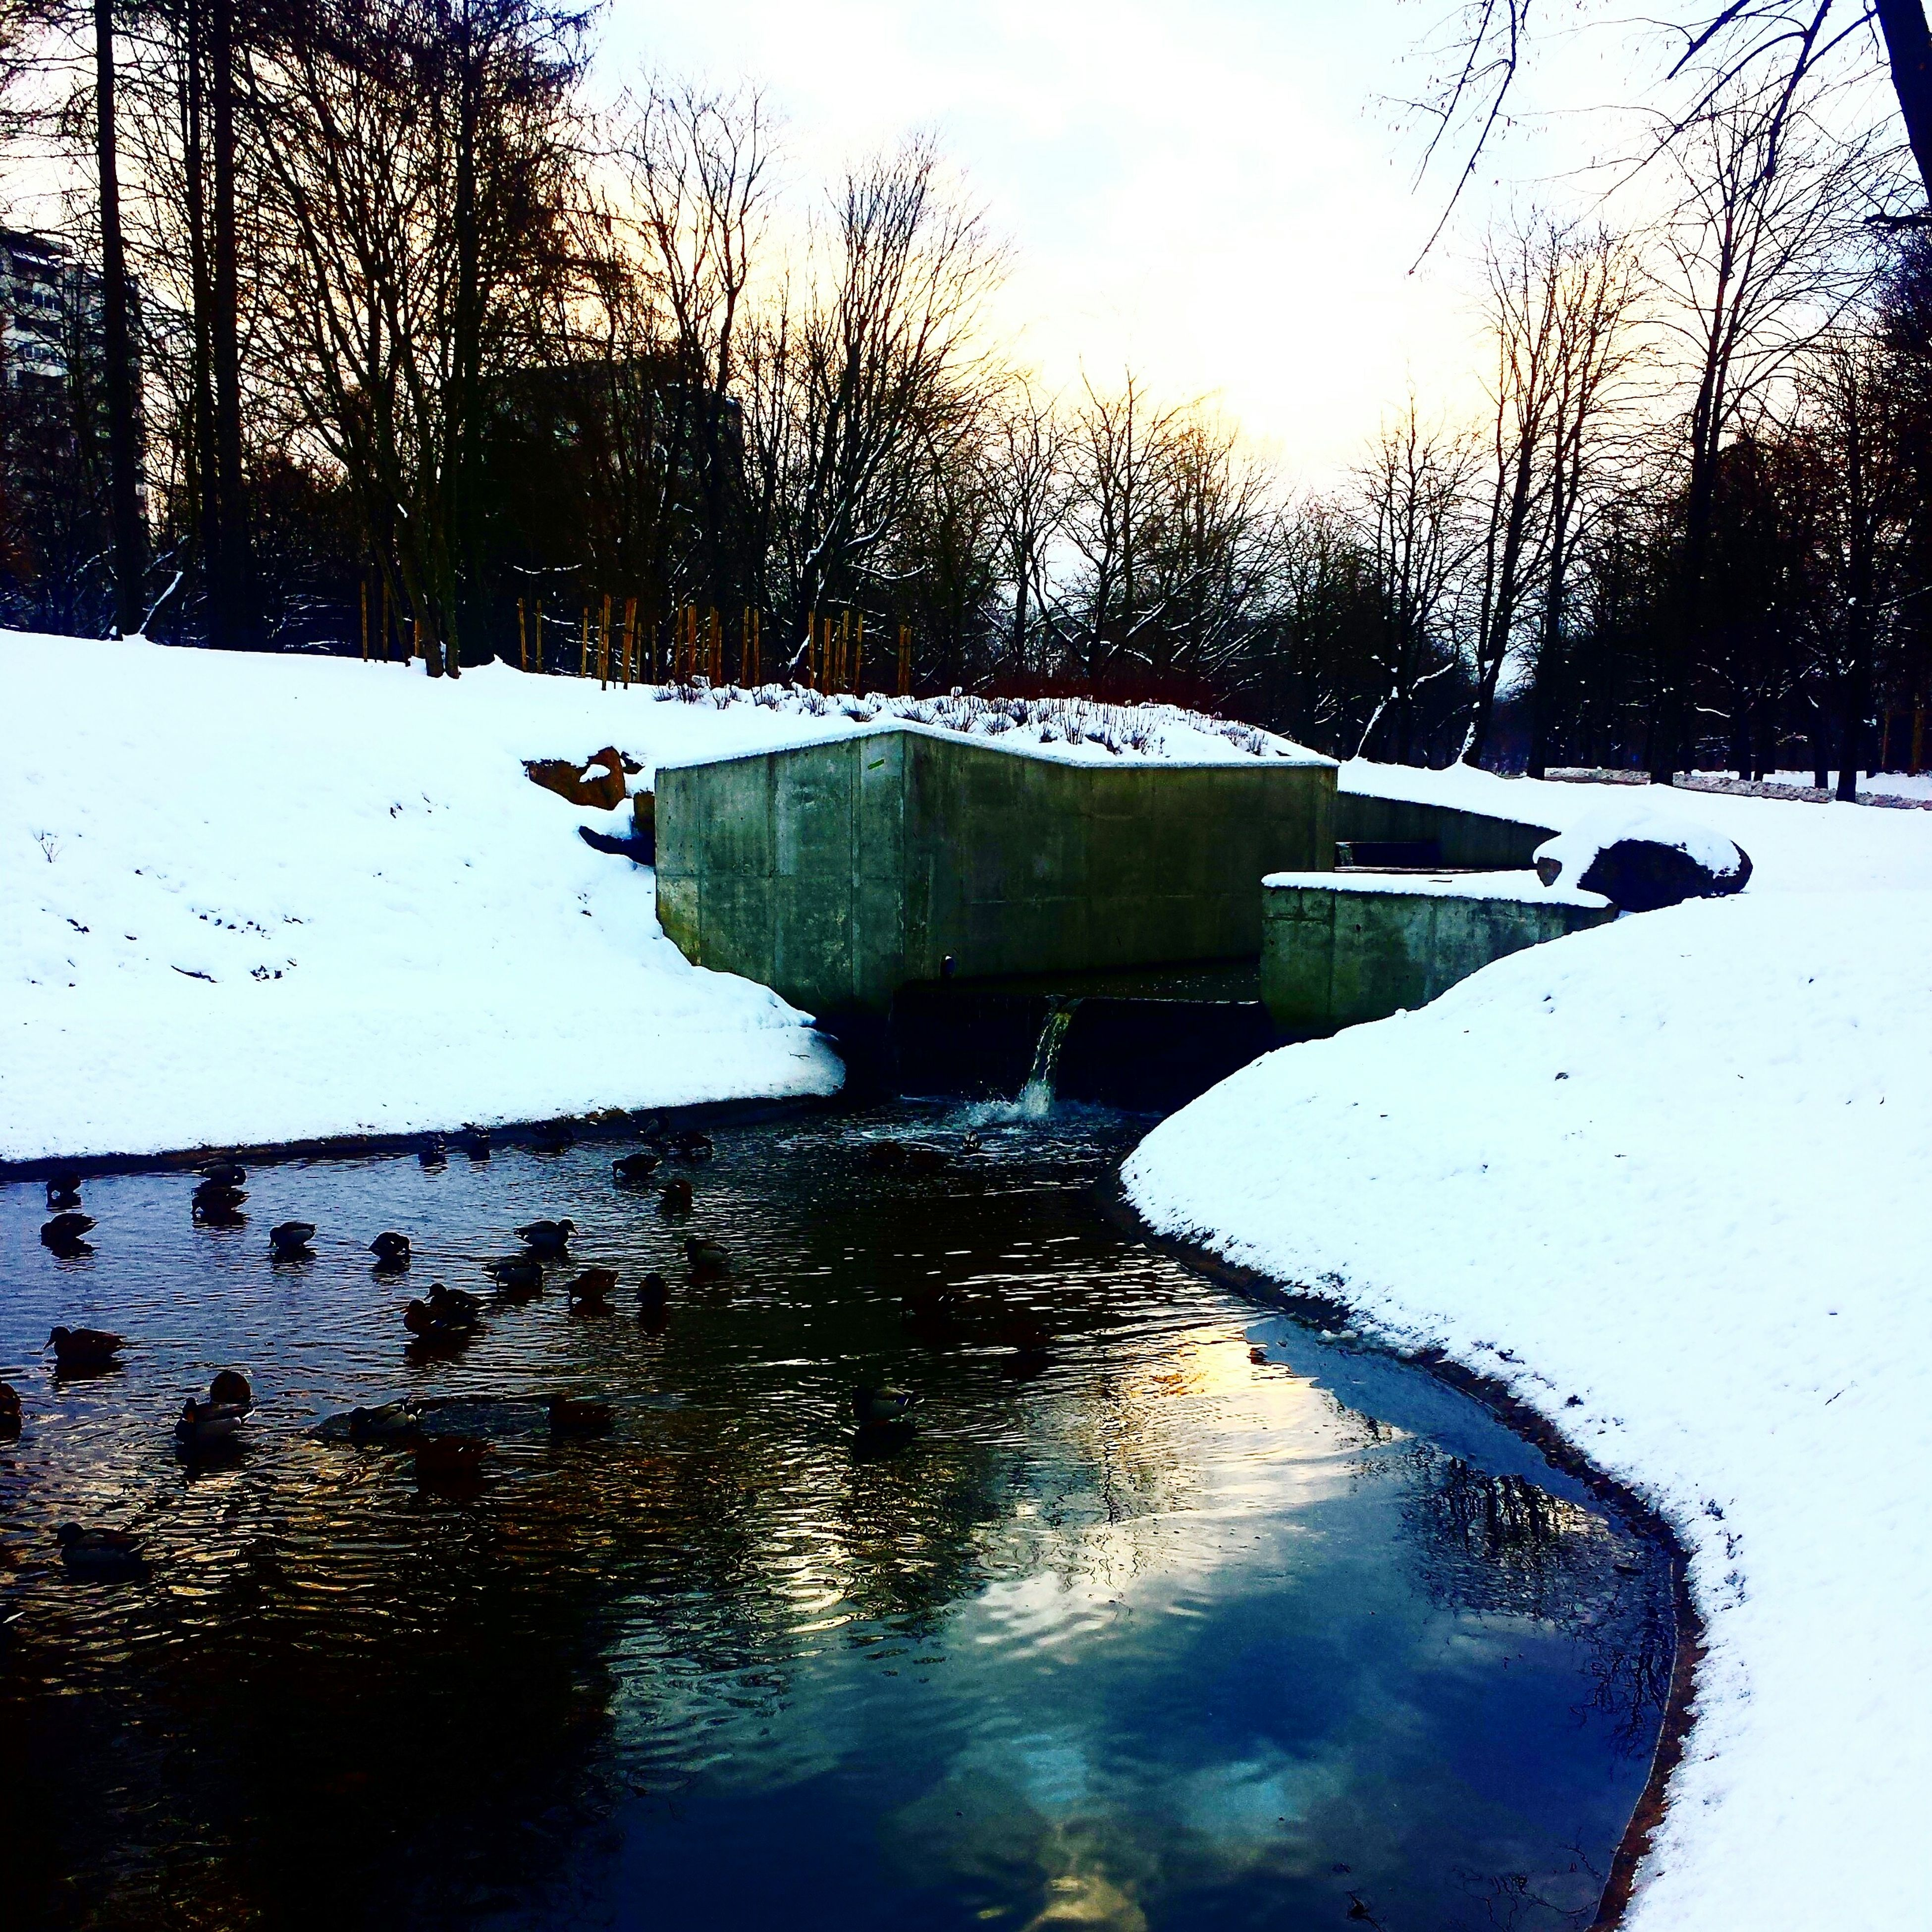 water, reflection, tree, sky, lake, snow, winter, cold temperature, tranquility, nature, tranquil scene, season, built structure, river, beauty in nature, fountain, day, scenics, outdoors, puddle